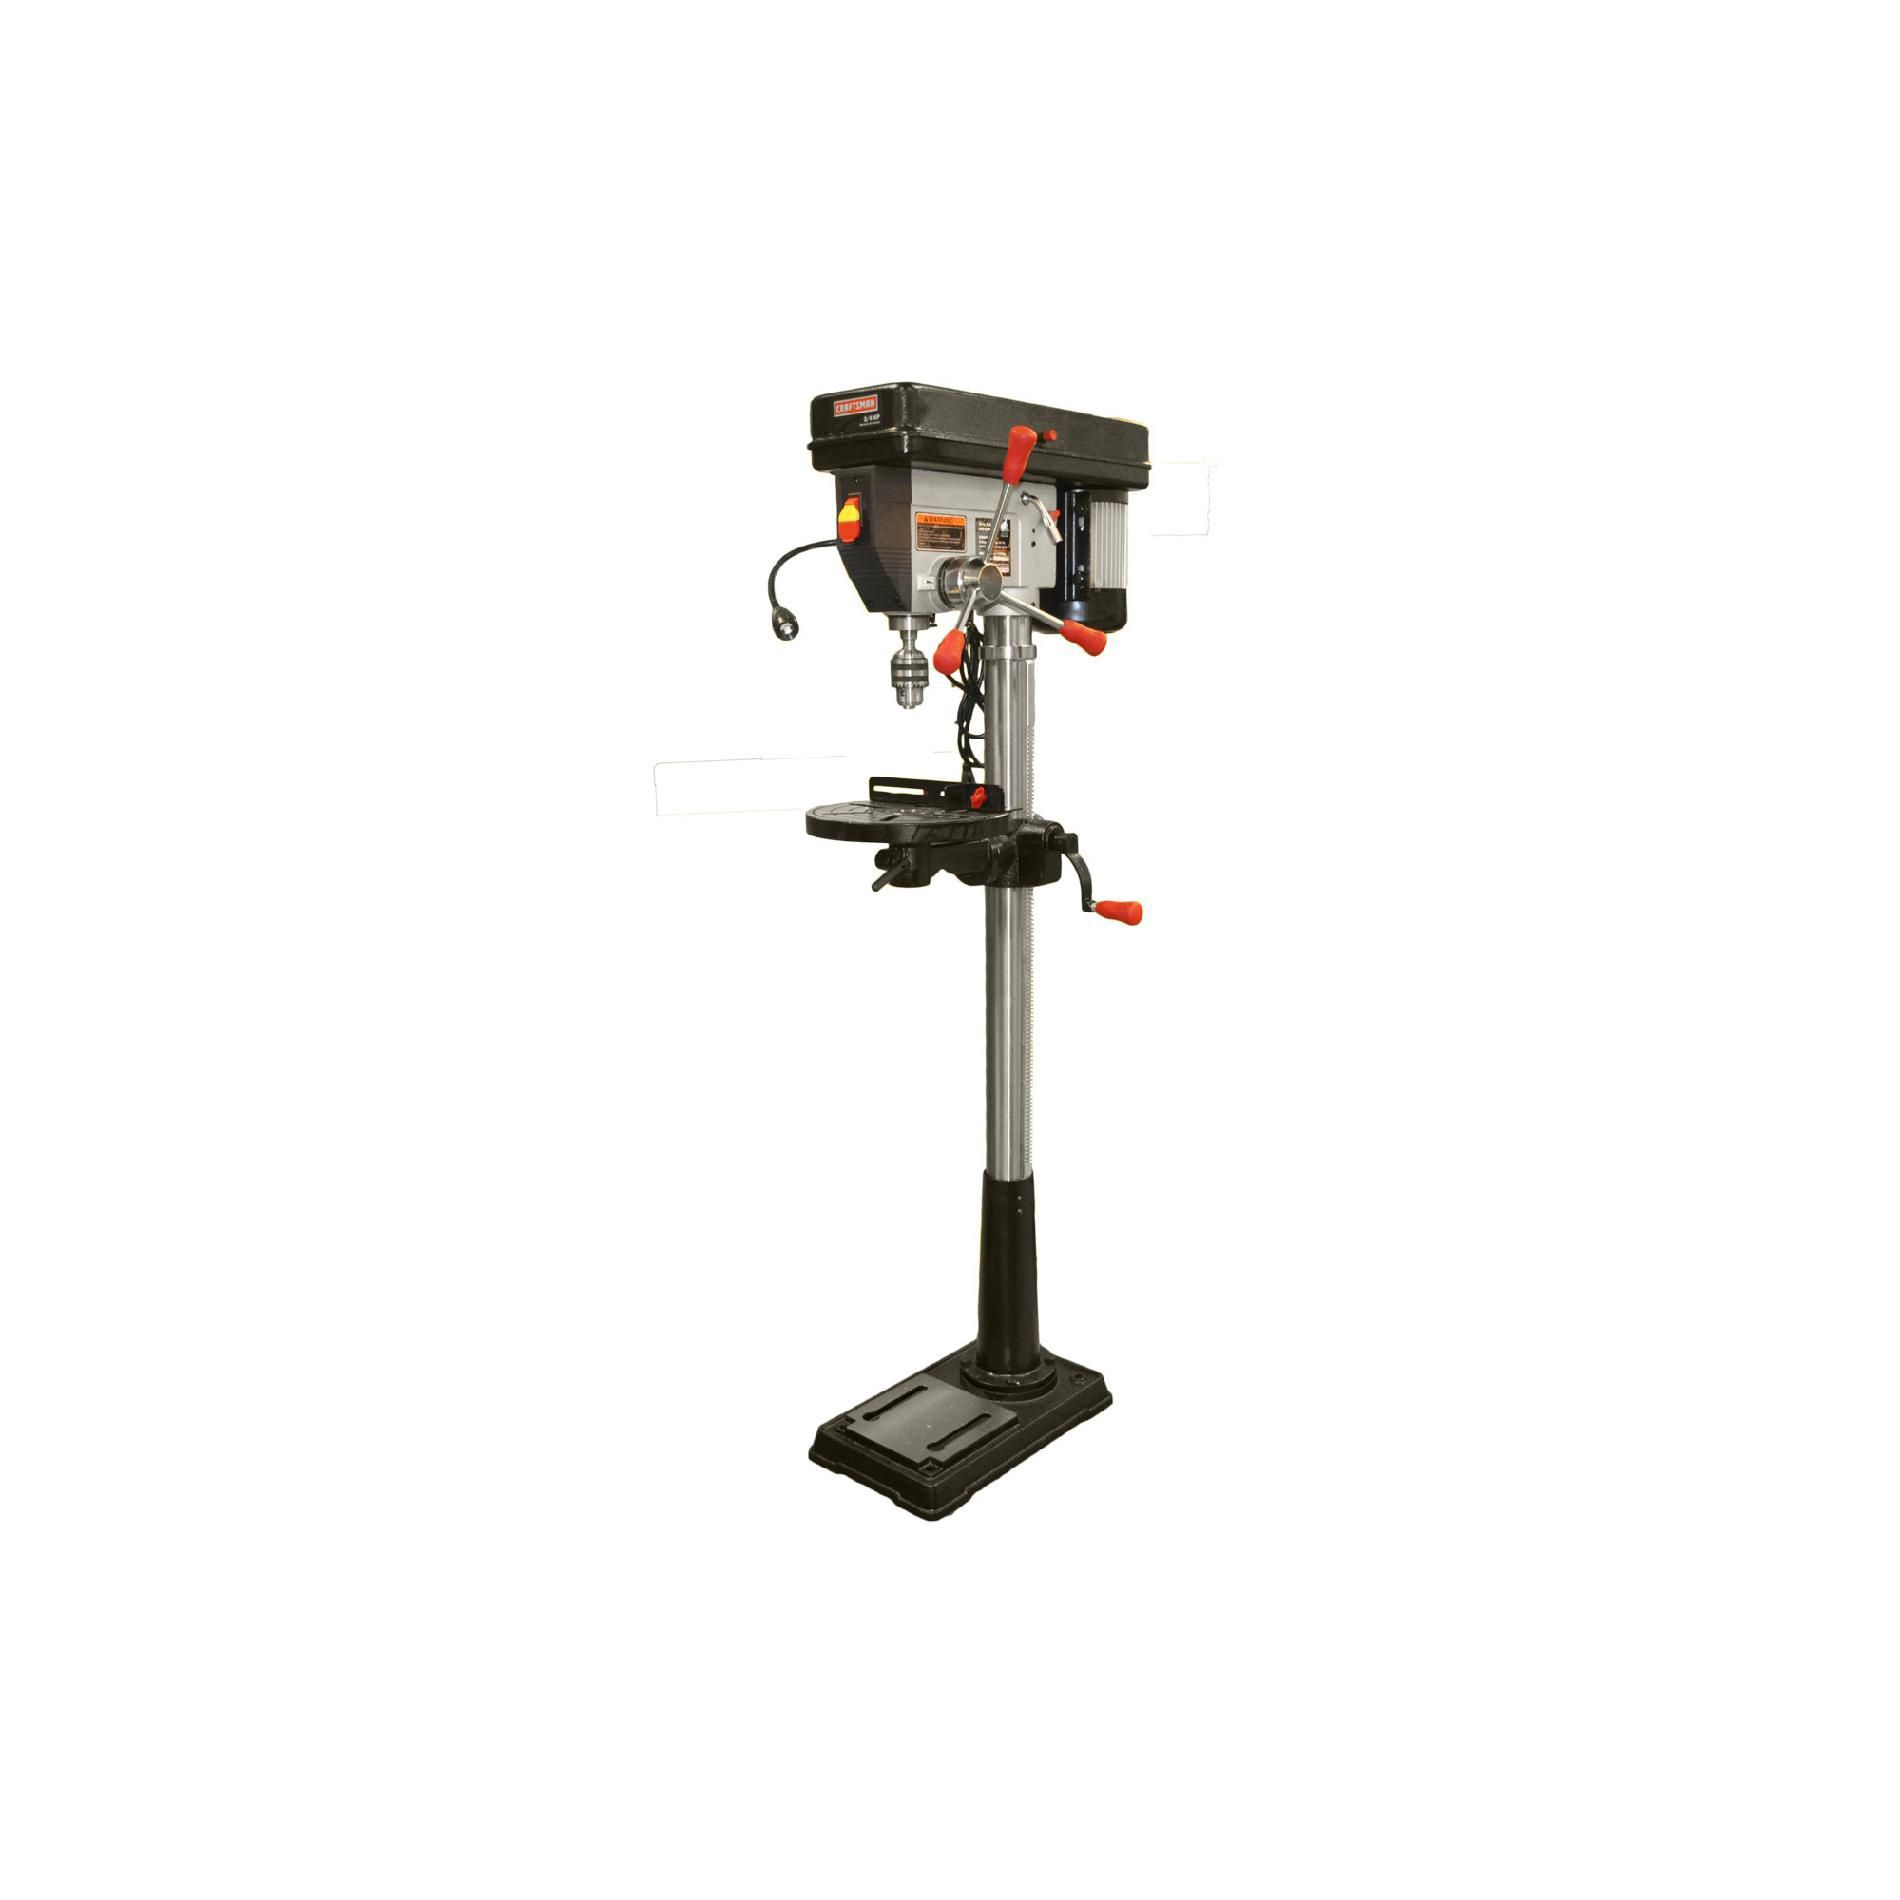 15 Drill Press With Laser And Led Light Power Your Way With Sears Led Lights Drill Press Craftsman